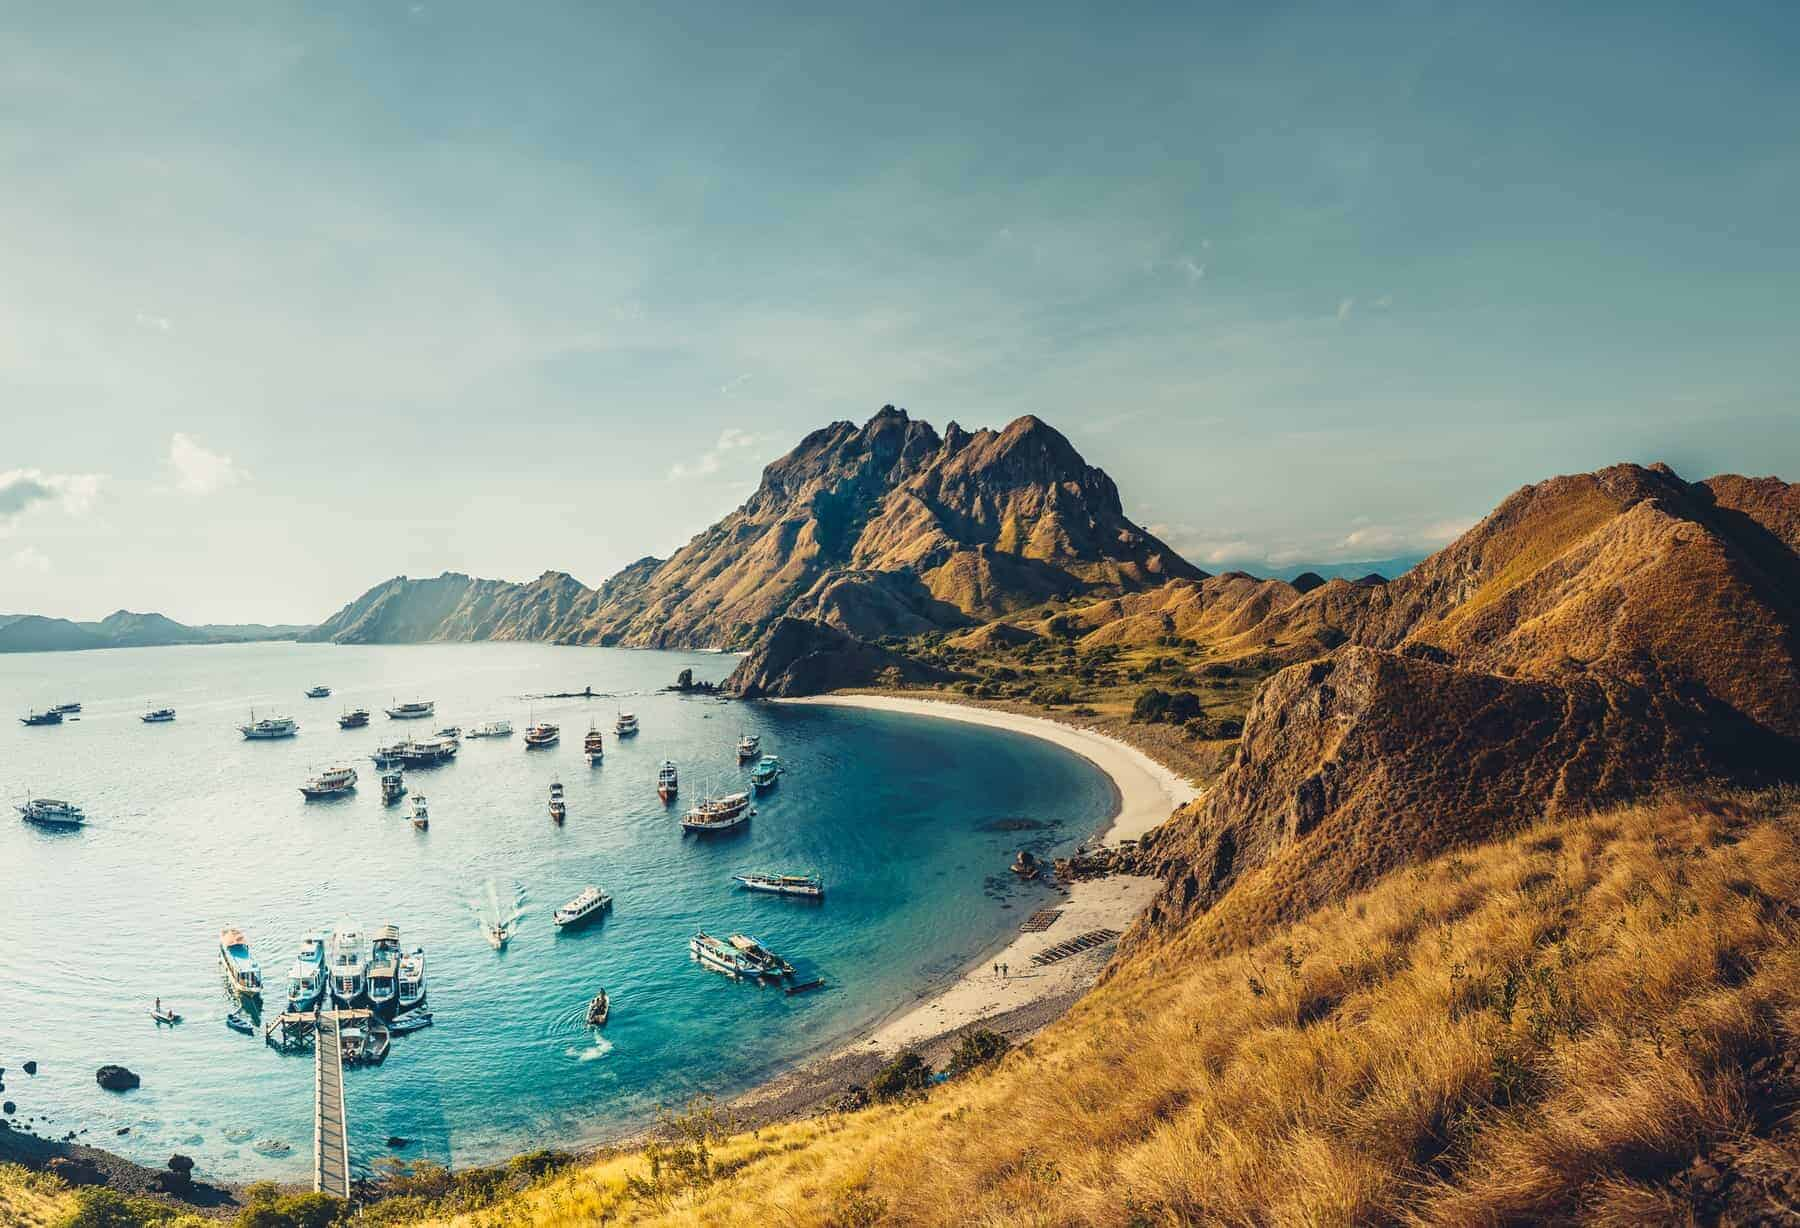 Mountains, ocean bay with boats. Aerial shot. Padar. Wonderful panoramic overview bay with the sand beaches surrounded by the mountains. Landscape of Padar island. Komodo National Park. Indonesia.